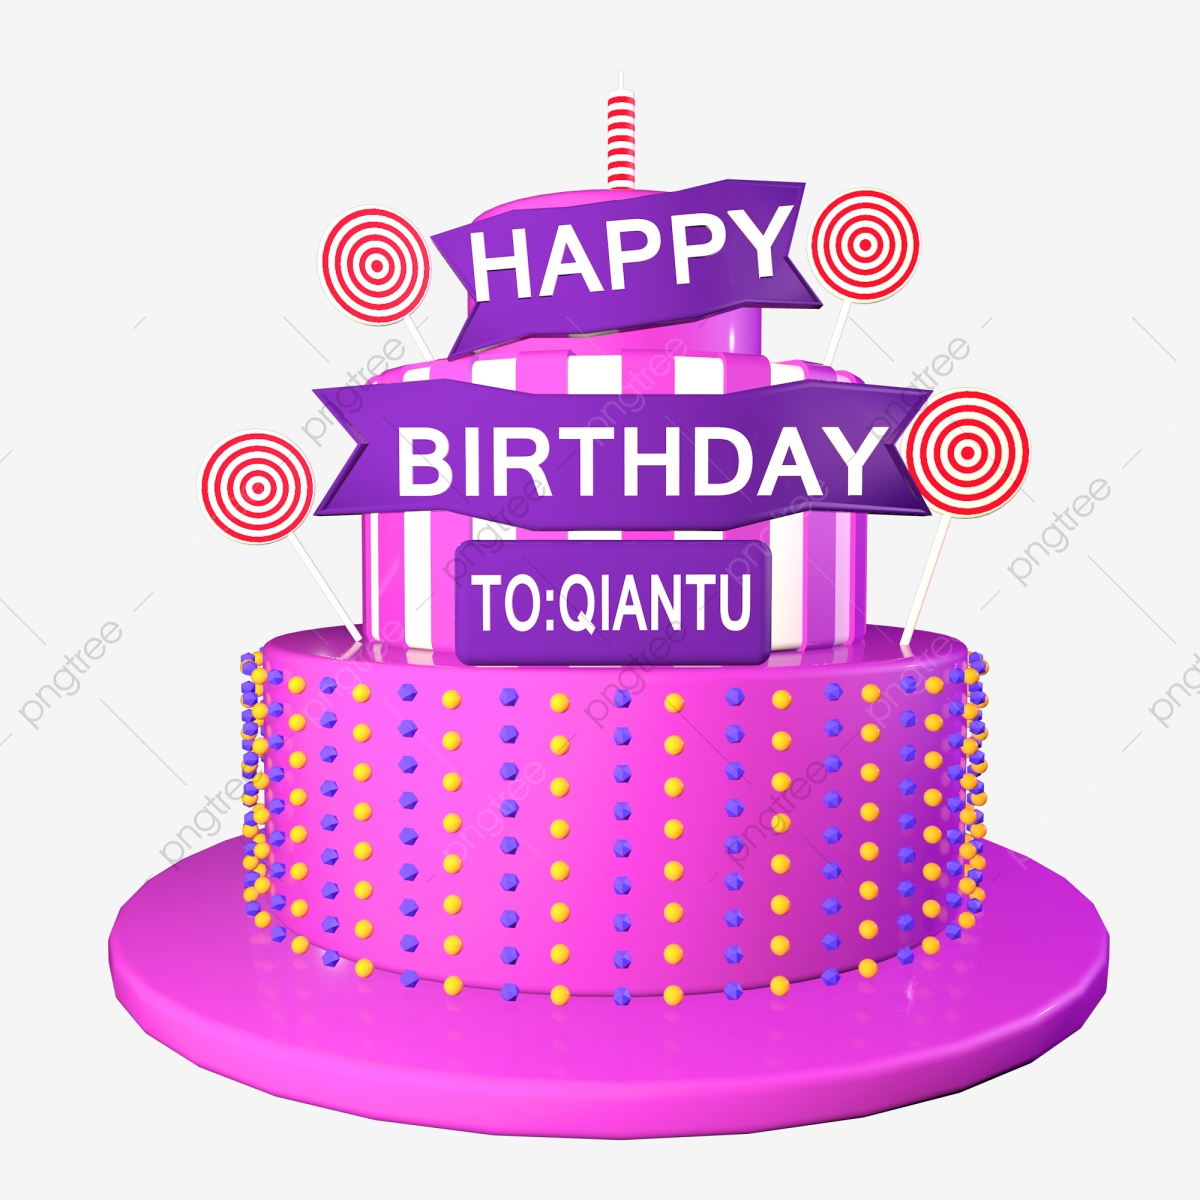 Remarkable 3D Pink Cake C4D Happy Birthday Stereo Font Lollipop 3D C4D Personalised Birthday Cards Paralily Jamesorg